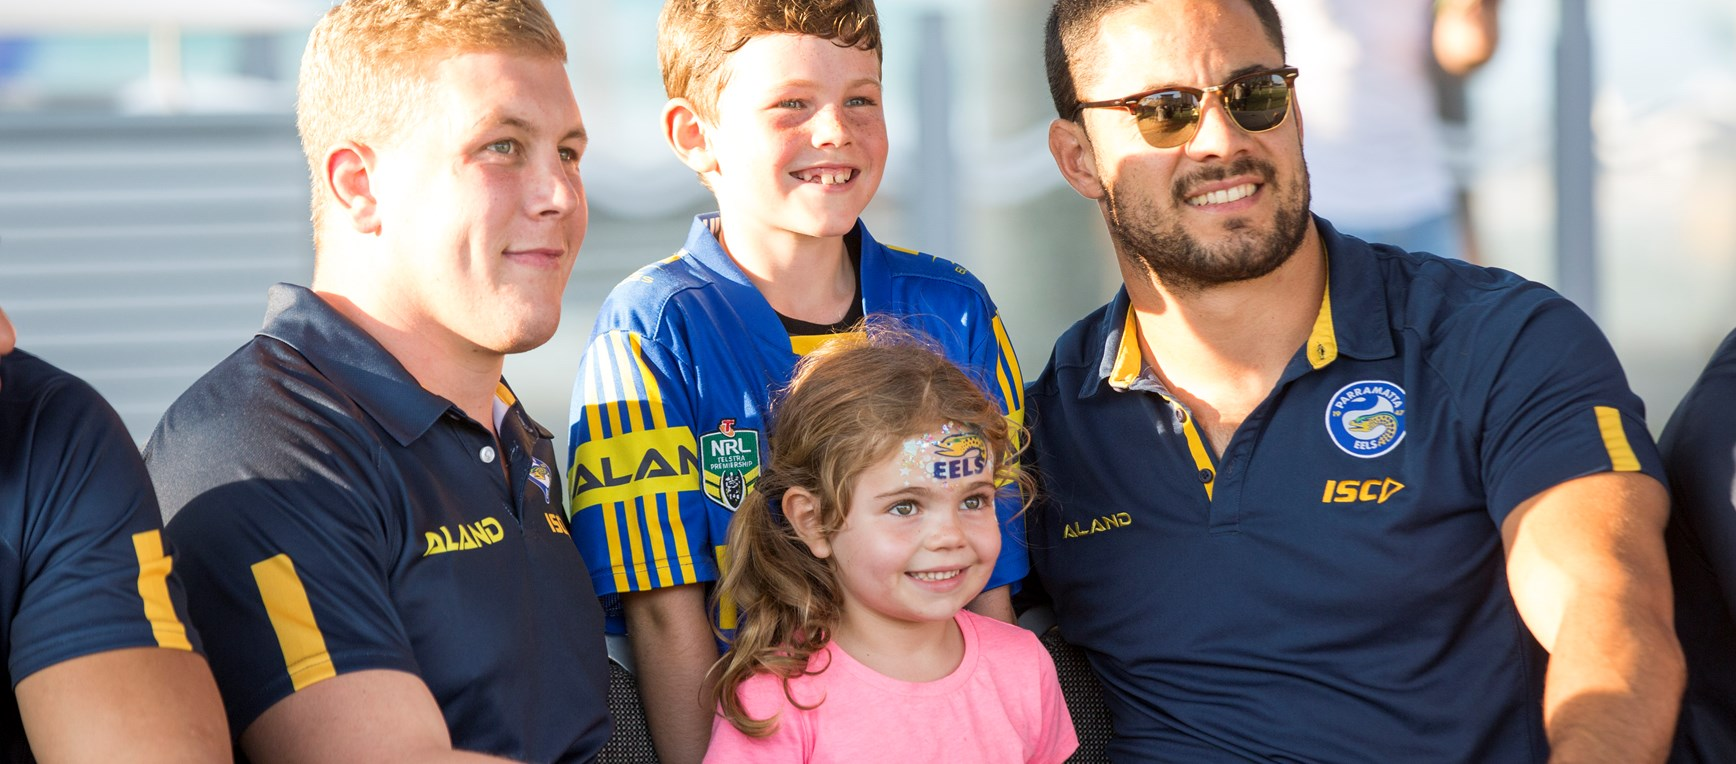 Eels hold Darwin signing session